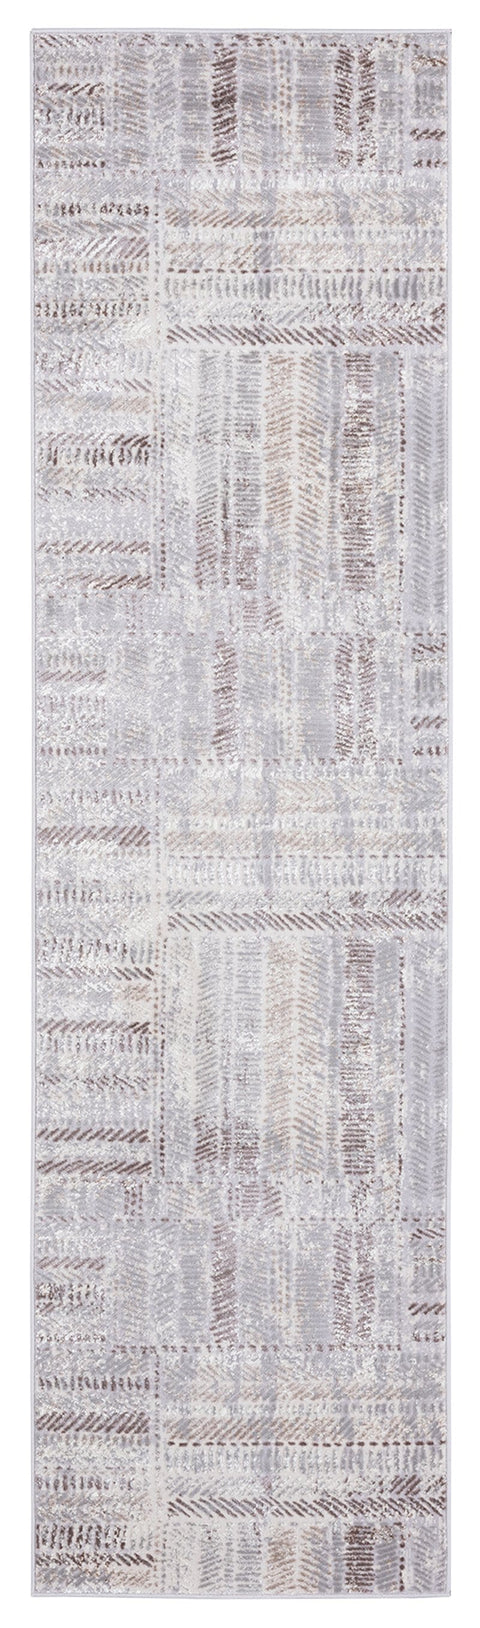 Nishem Brown Grey and Ivory Distressed Tribal Runner Rug